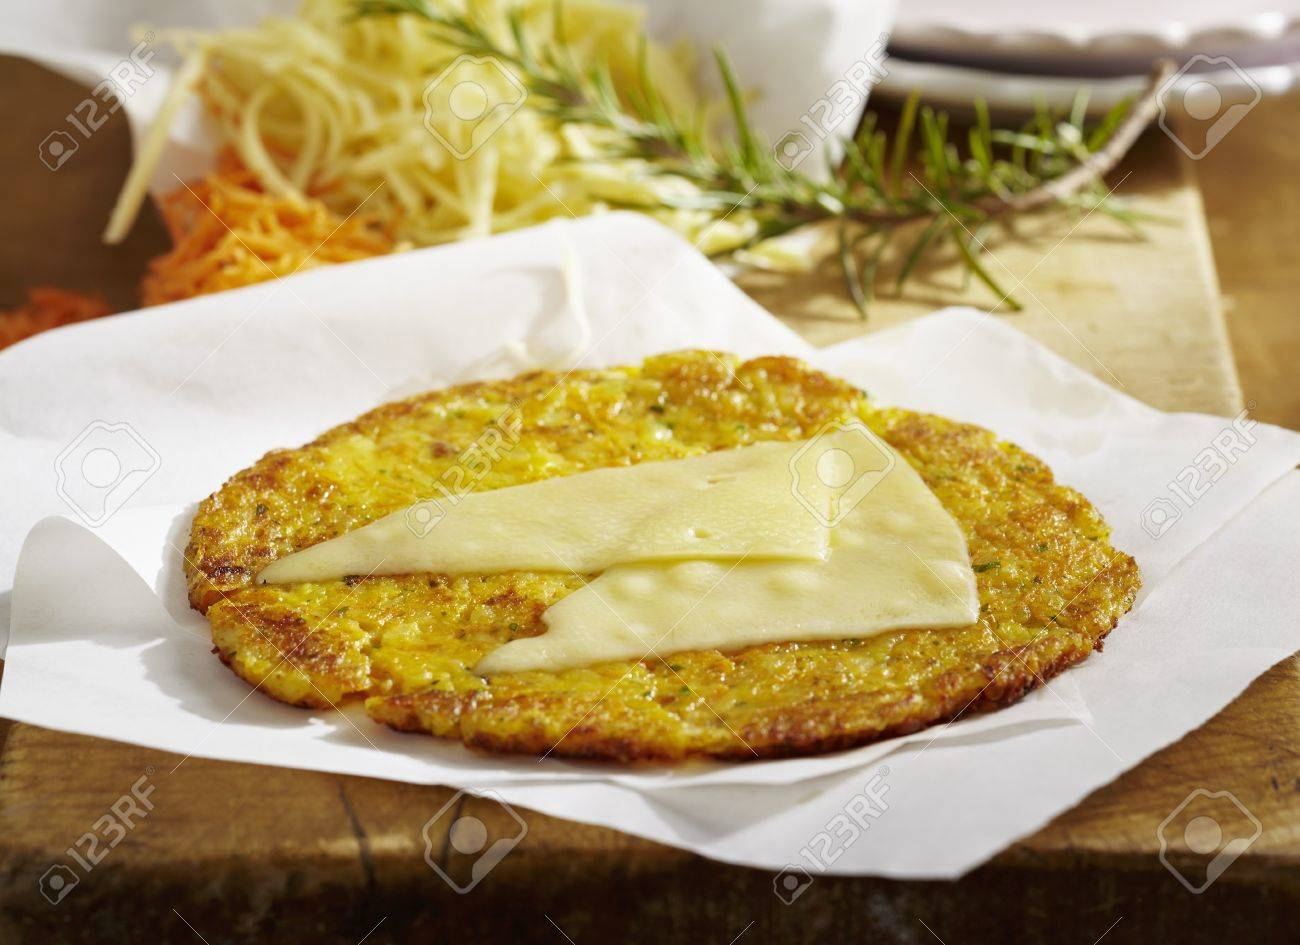 A Potato Fritter Topped With Appenzeller Cheese